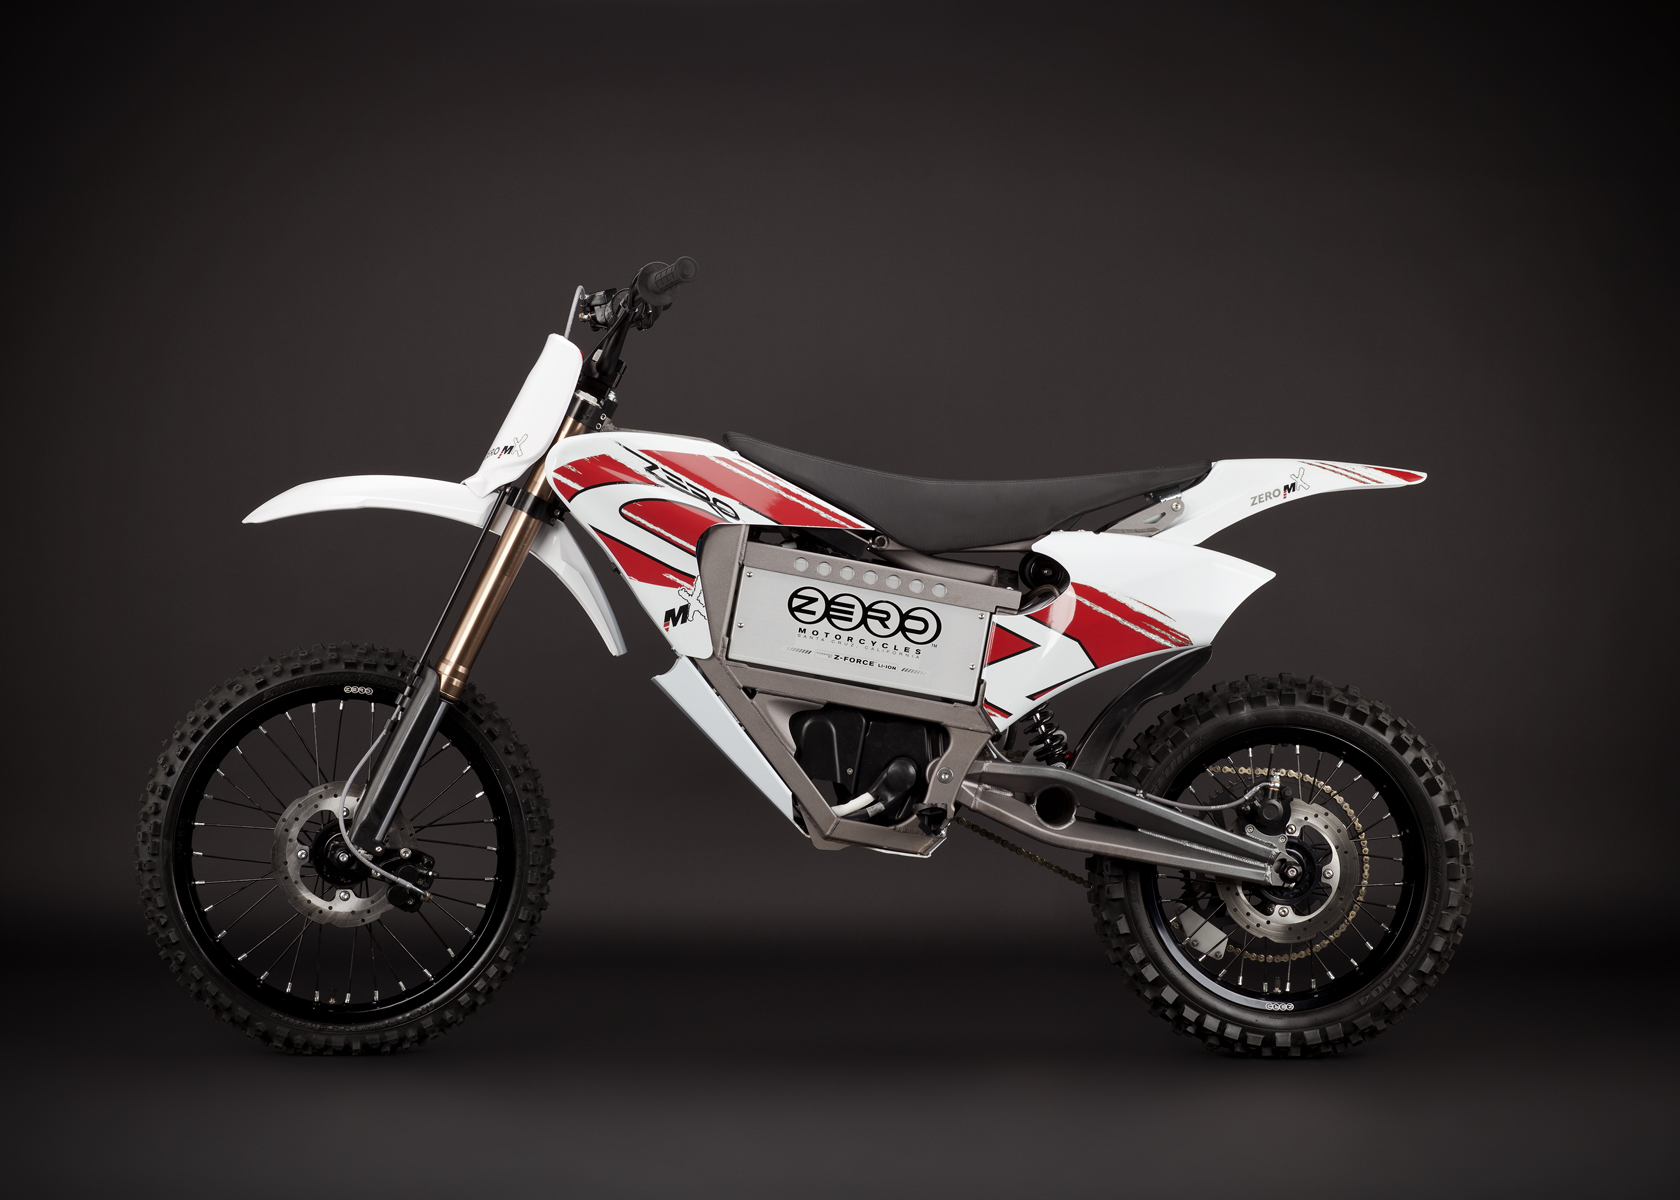 2011 Zero MX Electric Motorcycle: Left Profile, Dirt Model